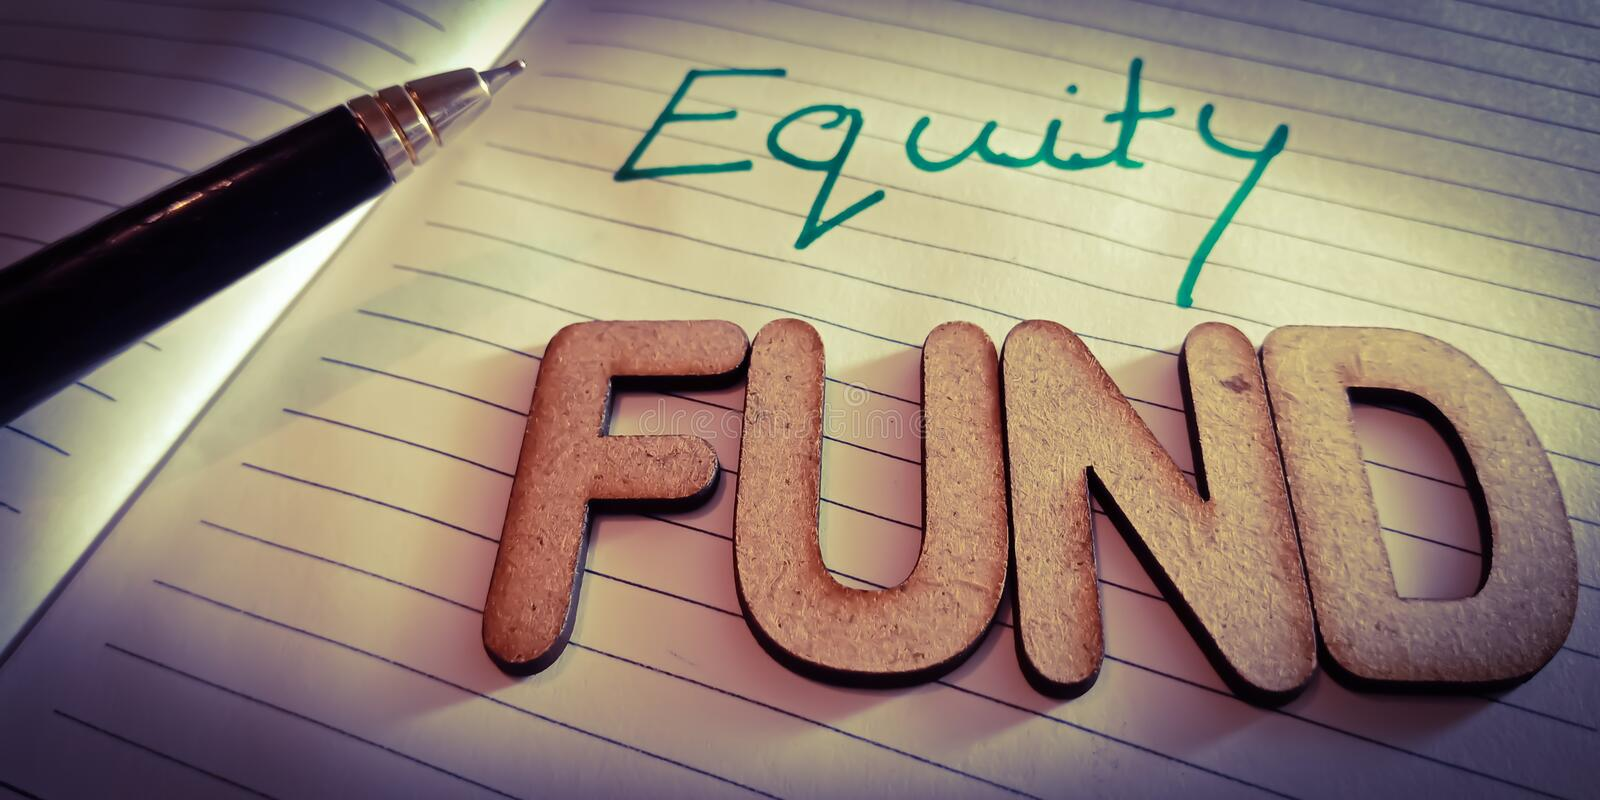 equity fund financial terminology displayed on white paper pen abstract stock photo